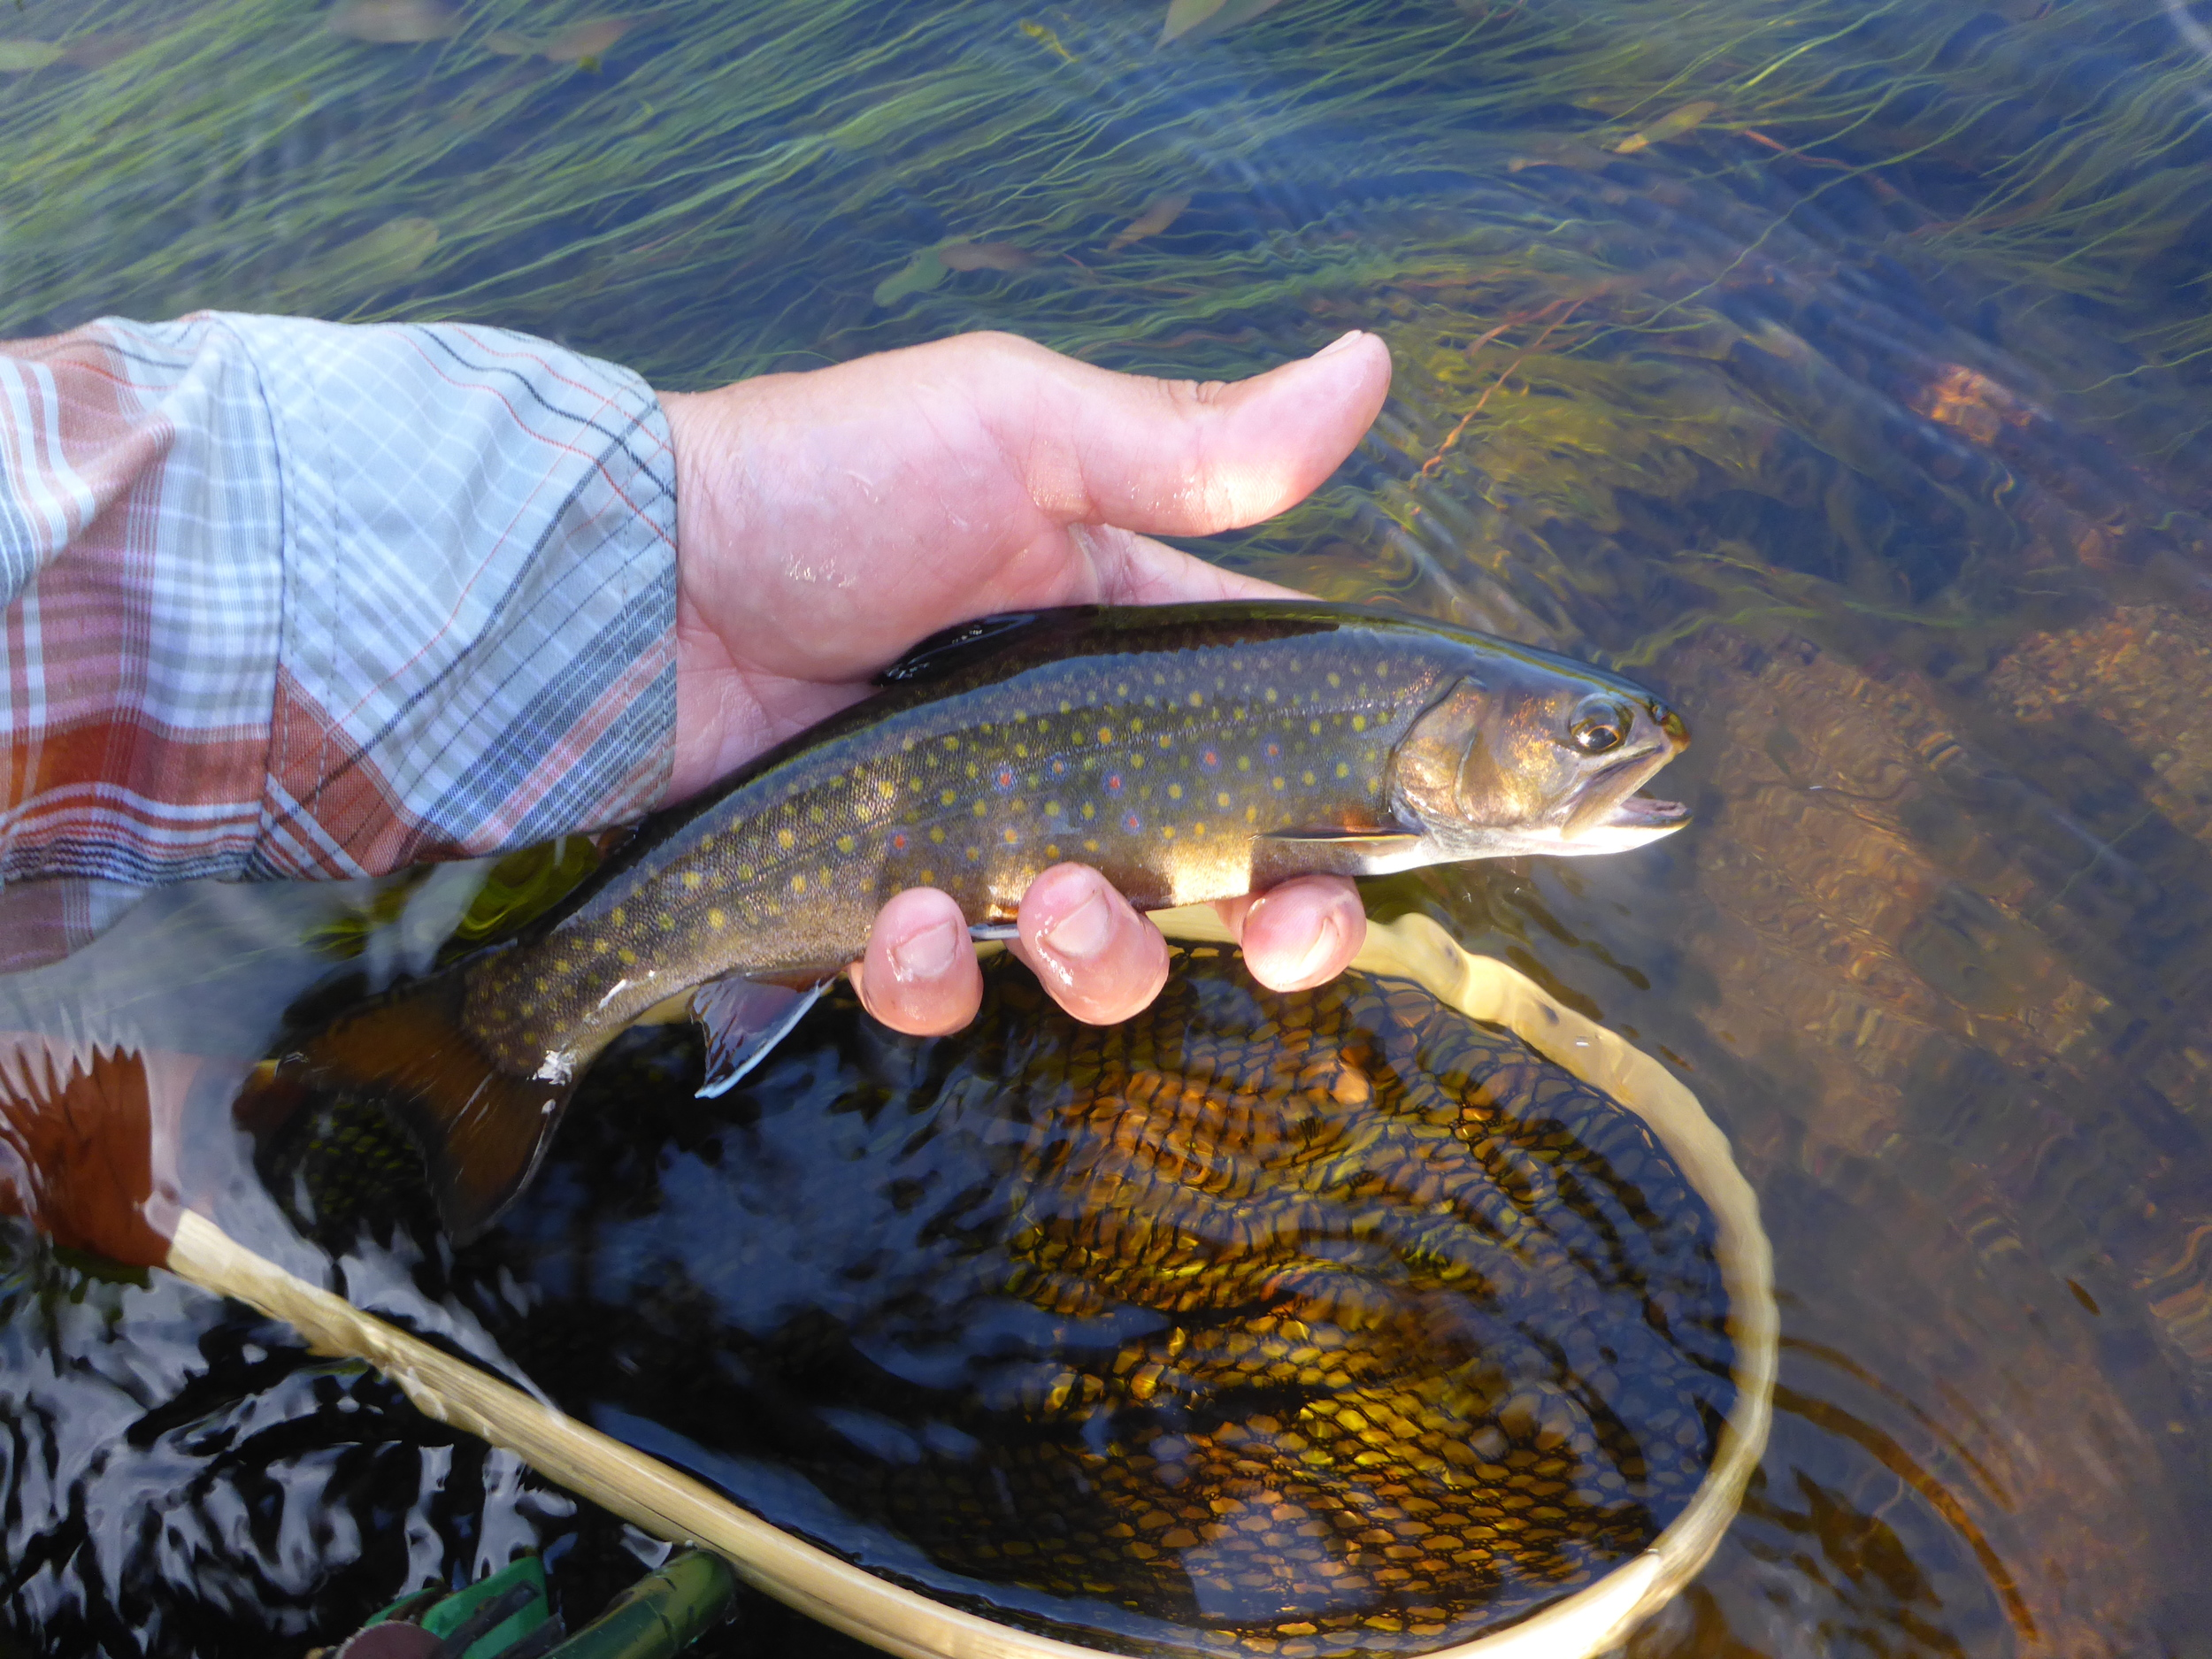 A fine specimen of a wild NH brook trout.